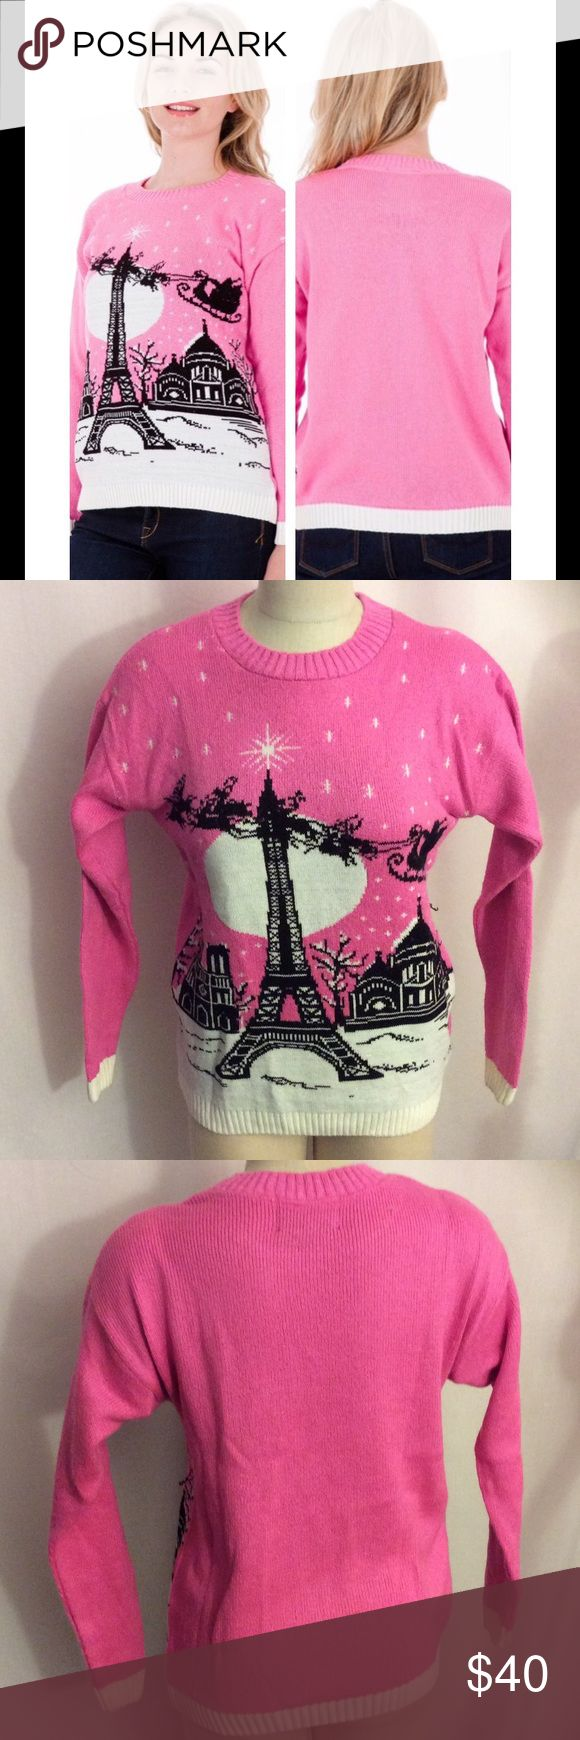 """NWOT Christmas n Paris PInk Sweater Size Small NWOT Christmas in Paris PInk Sweater Small Runs Big  - Womens Christmas Jumper  They say Paris in the Spring is the height of romance – well Paris in the winter is just as beautiful. With Santa riding his sleigh over the city streets, this jumper has more than meets the eye. Not your typical funny Christmas jumper – this oozes casual Parisian style in a beautiful pink.  Made in Great Britain, Designed in Great Britain 80% Acrylic / 20% Nylon 38""""…"""